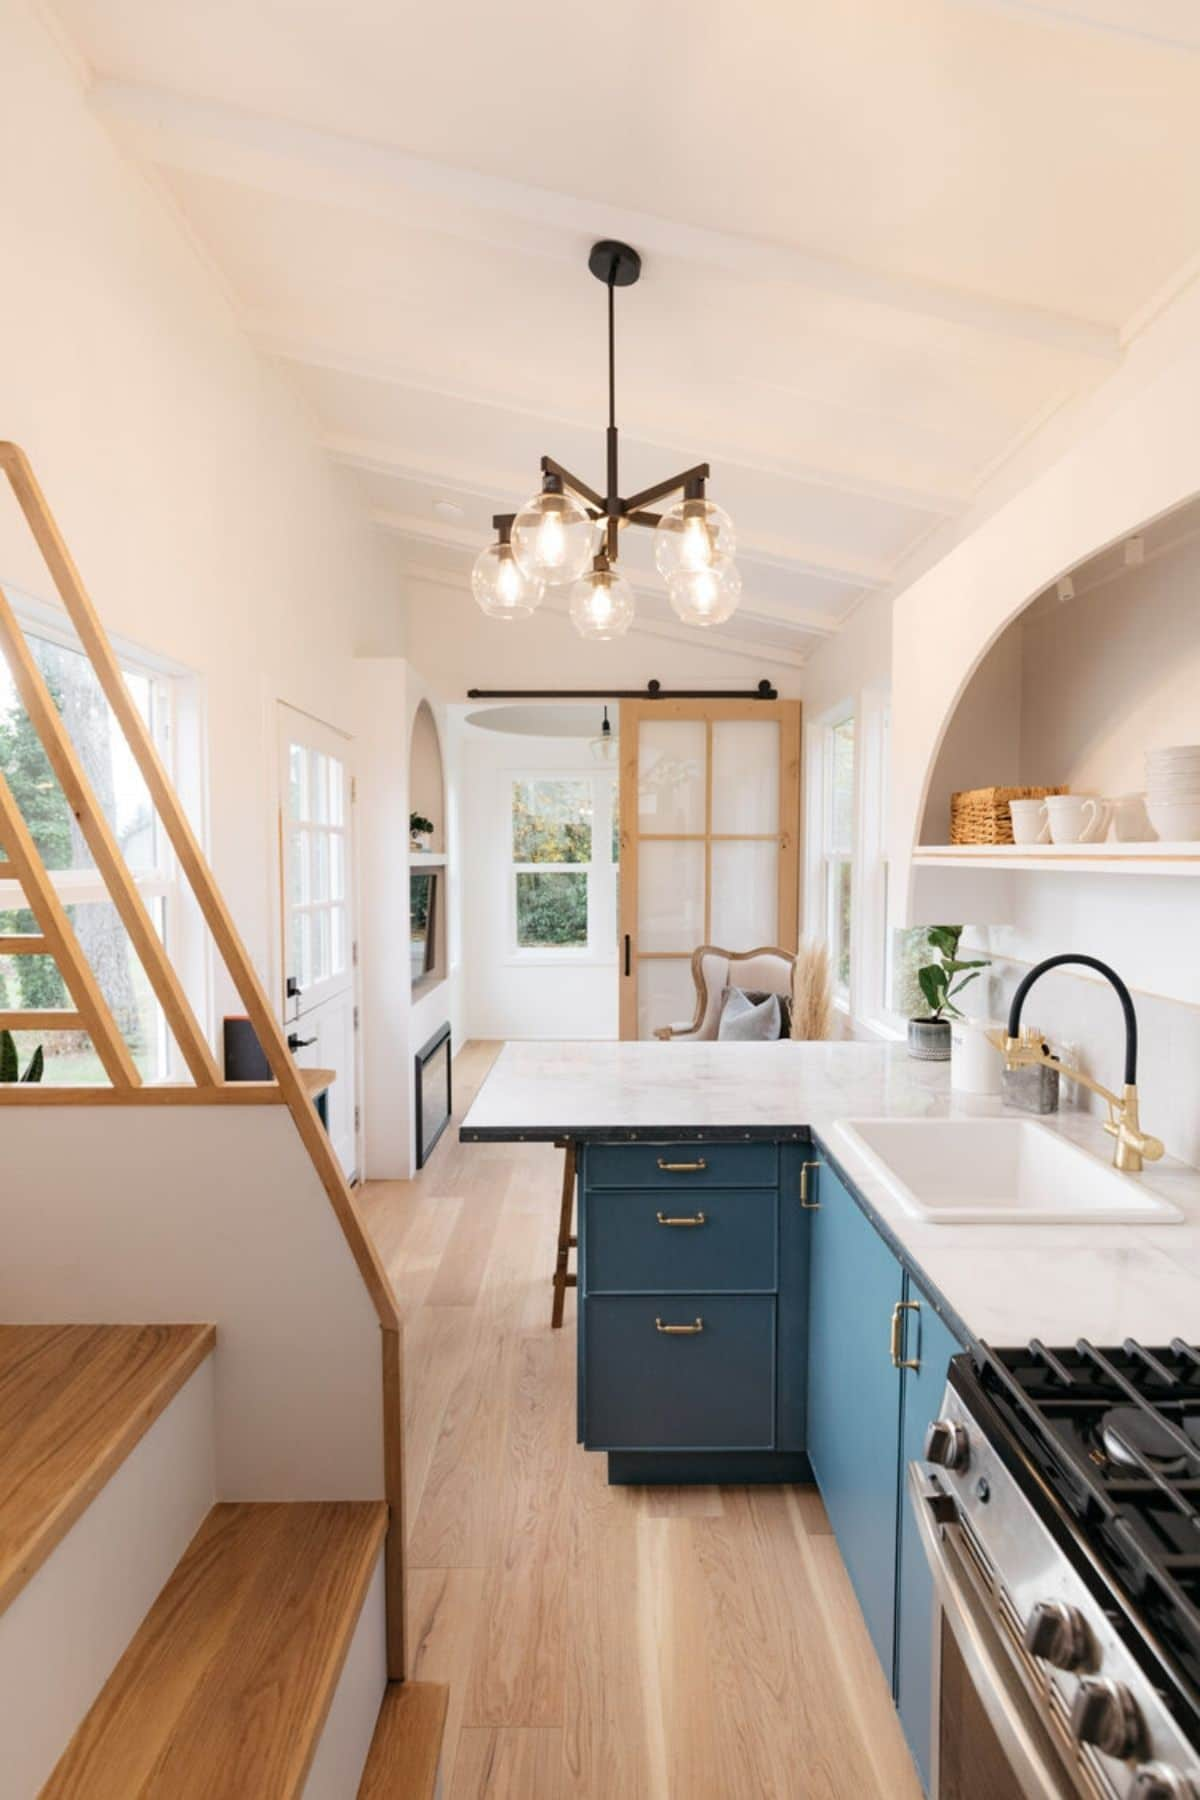 View from kitchen into tiny home living area with edison light chandelier